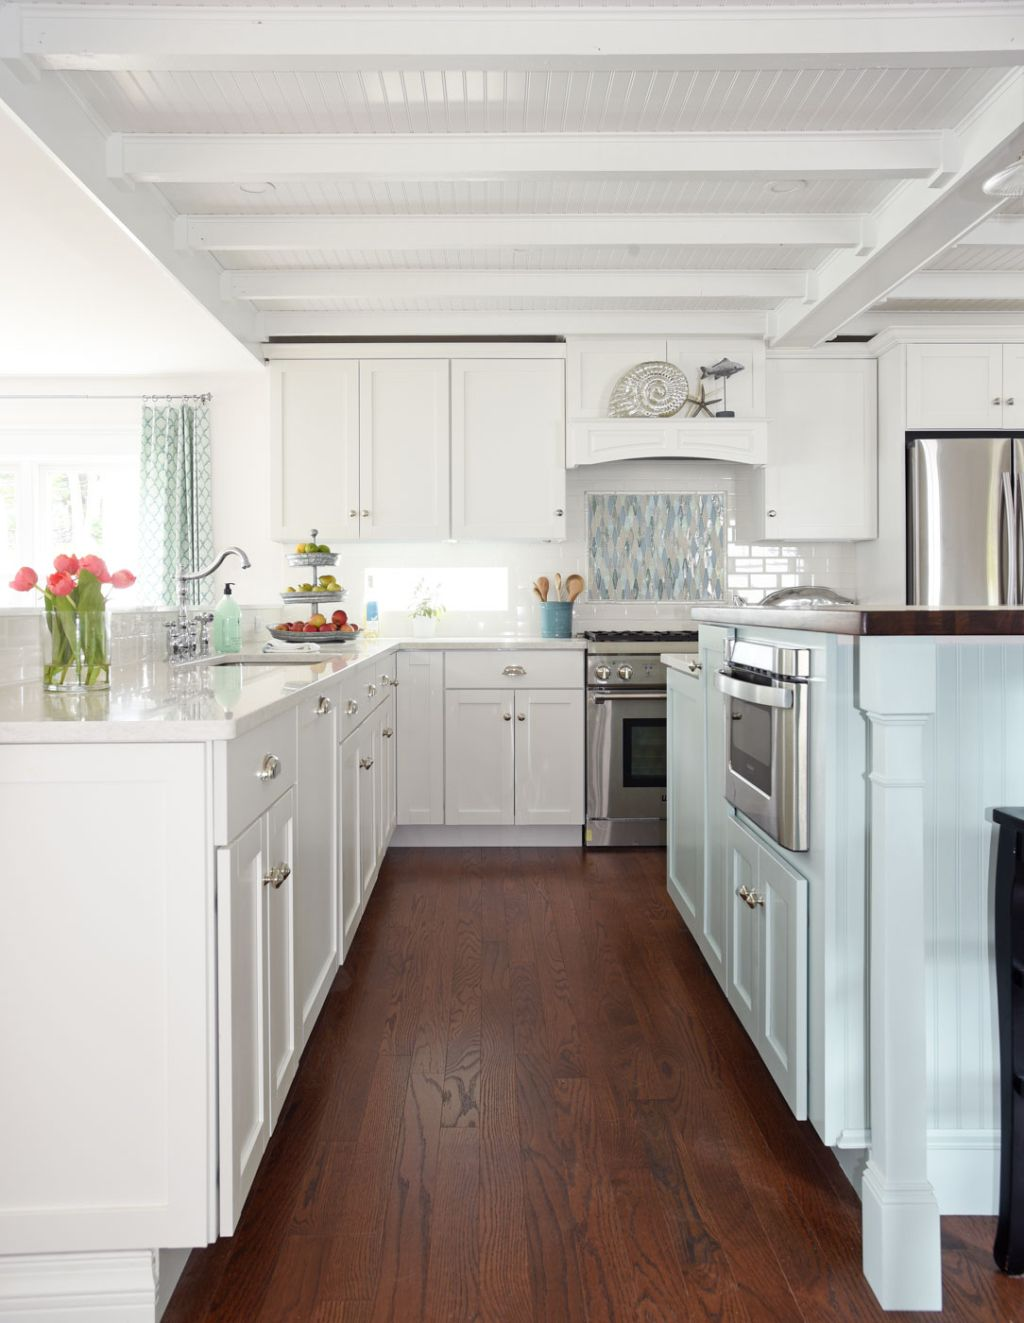 SoPo Cottage | Kitchens, Cottage design and Wainscoting